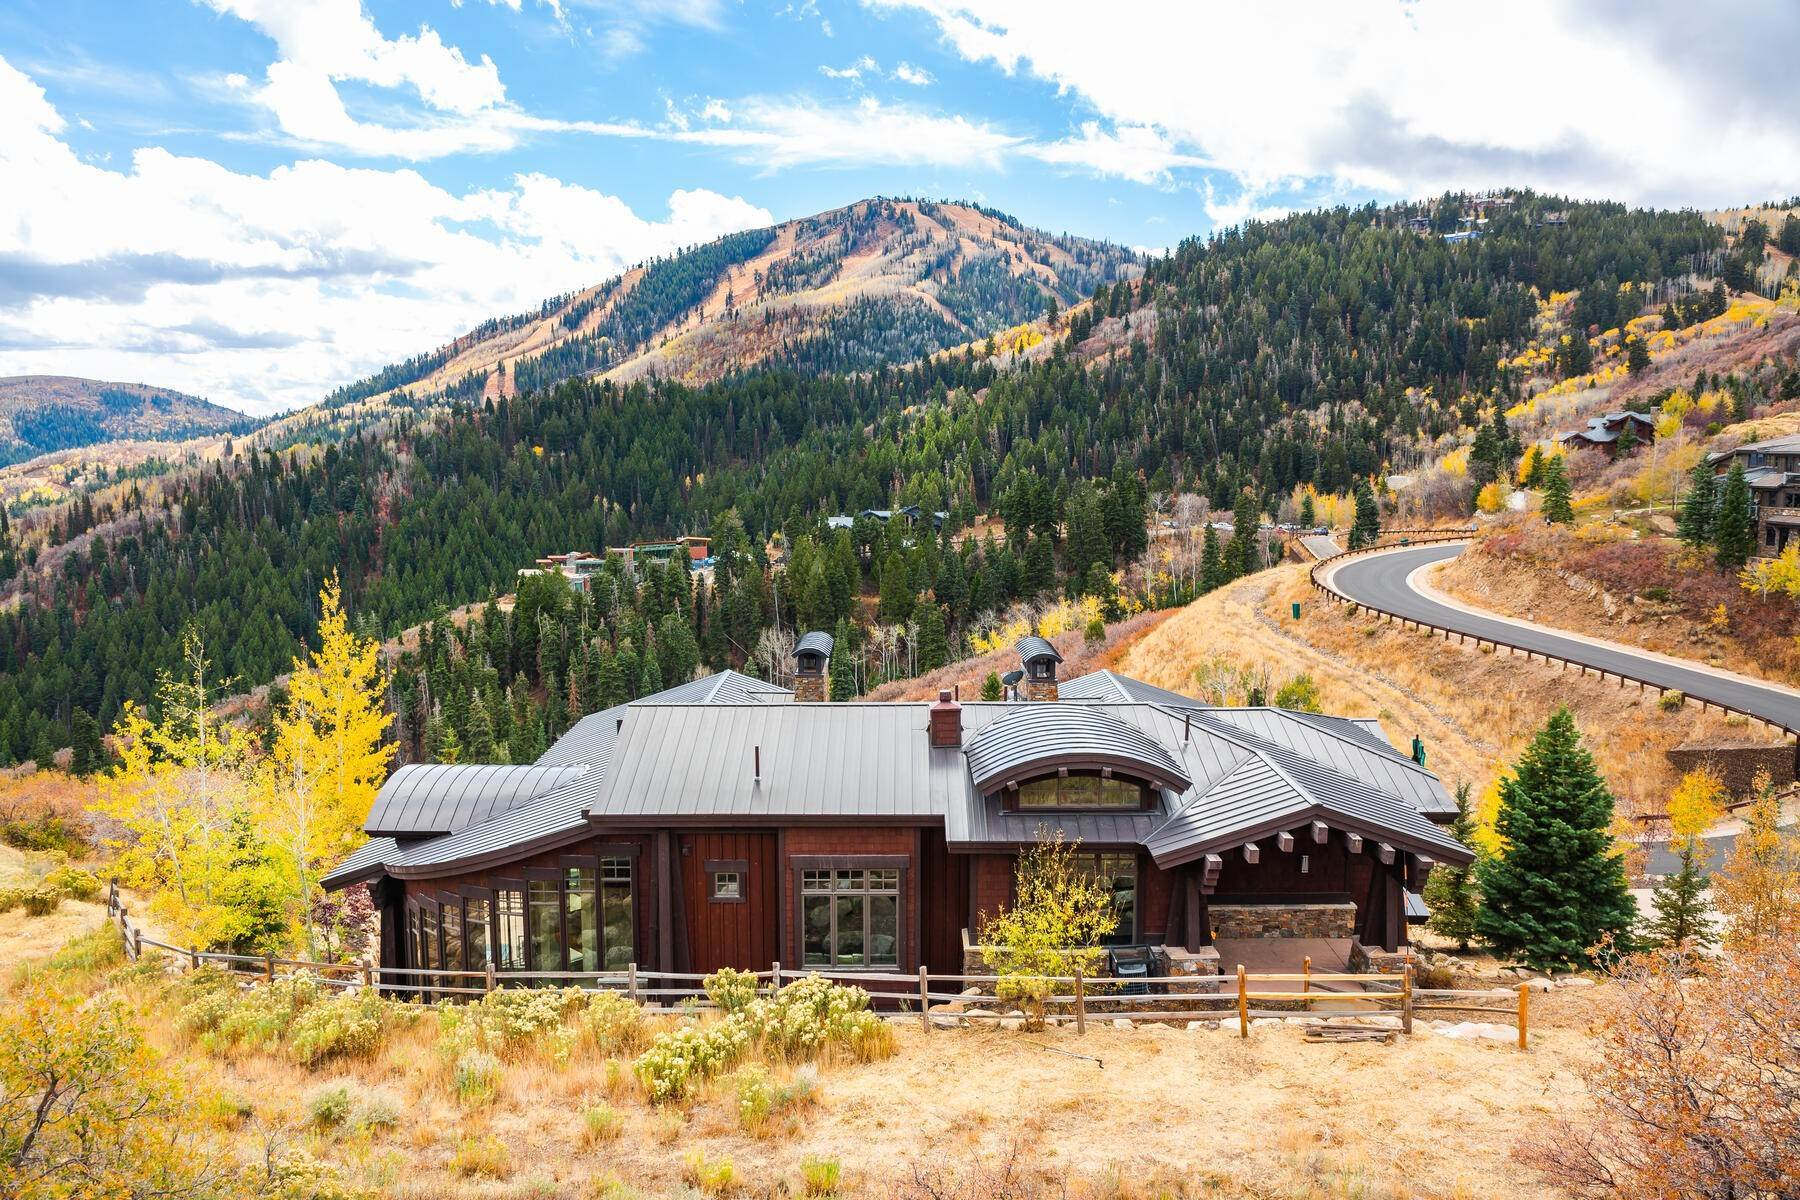 Single Family Homes for Sale at Deer Crest Ski-In/Ski-Out Masterpiece with Mountain Views 10153 N Summit View Drive Park City, Utah 84060 United States